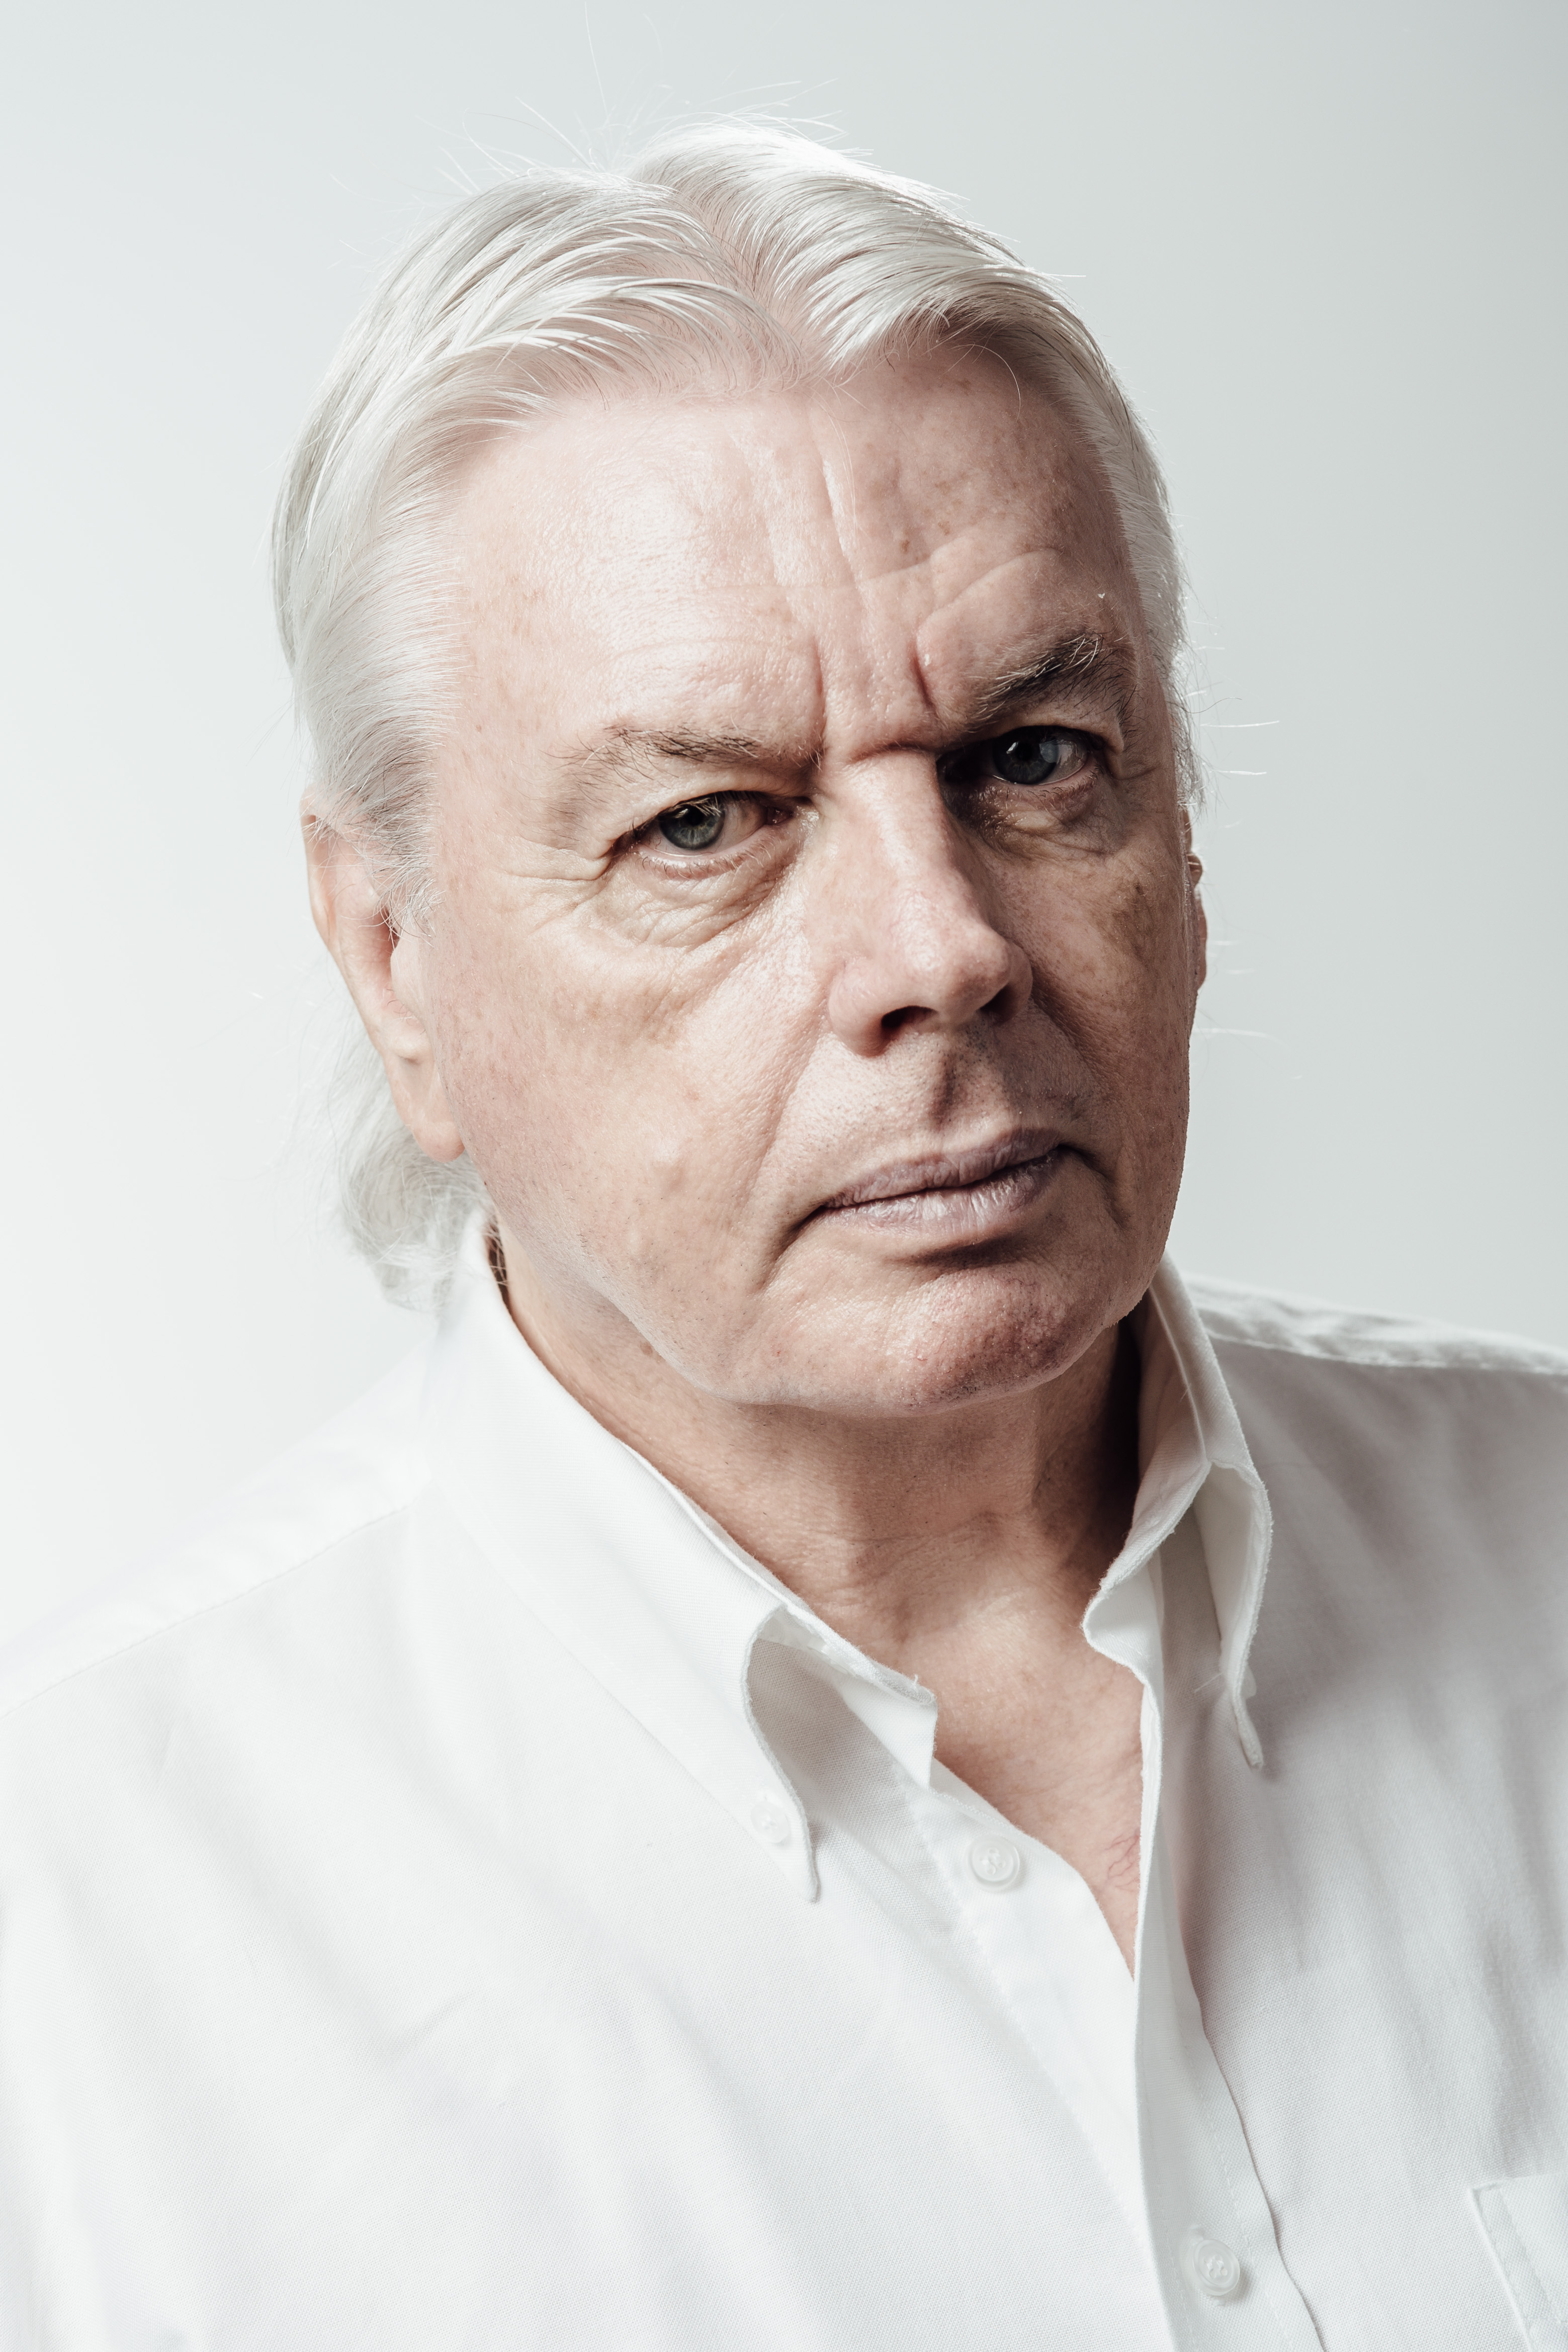 5 'Insane' Conspiracies By David Icke That Could Actually ...